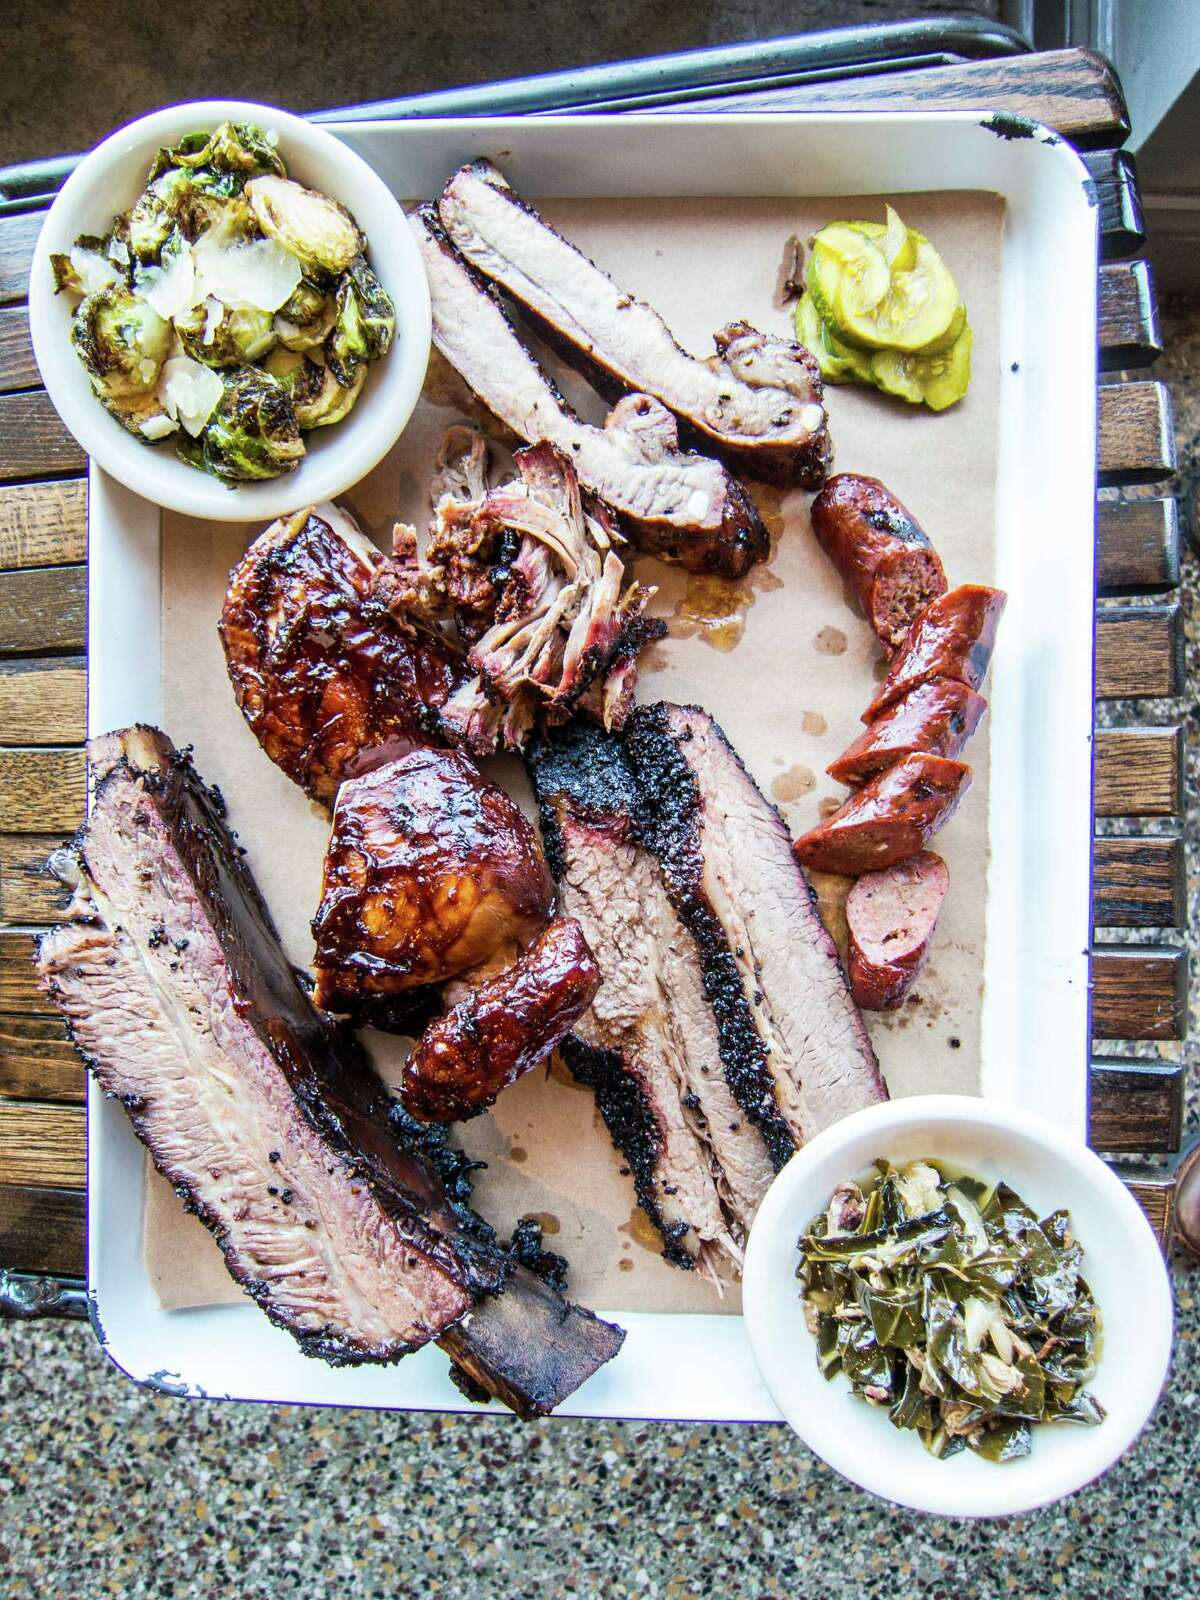 Meat plate at Texas Jack's Barbecue in Arlington, Virginia